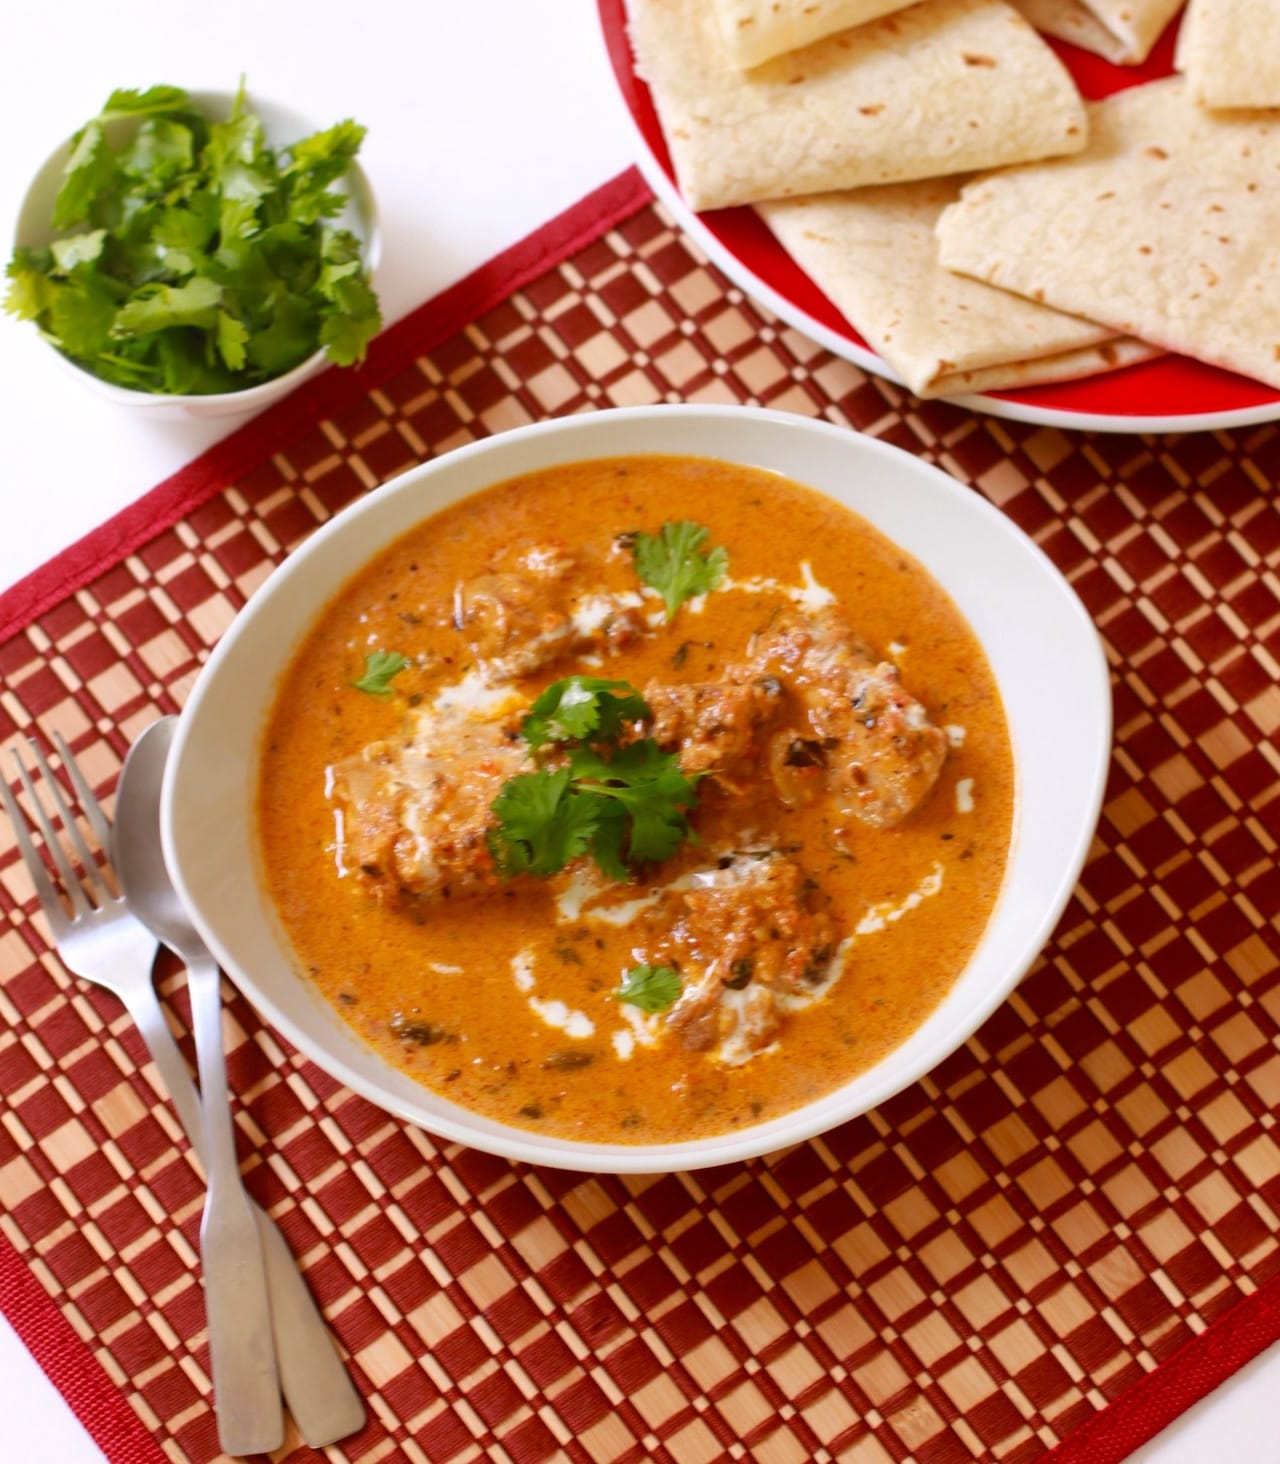 Butter chickenmurgh makhani playful cooking origin forumfinder